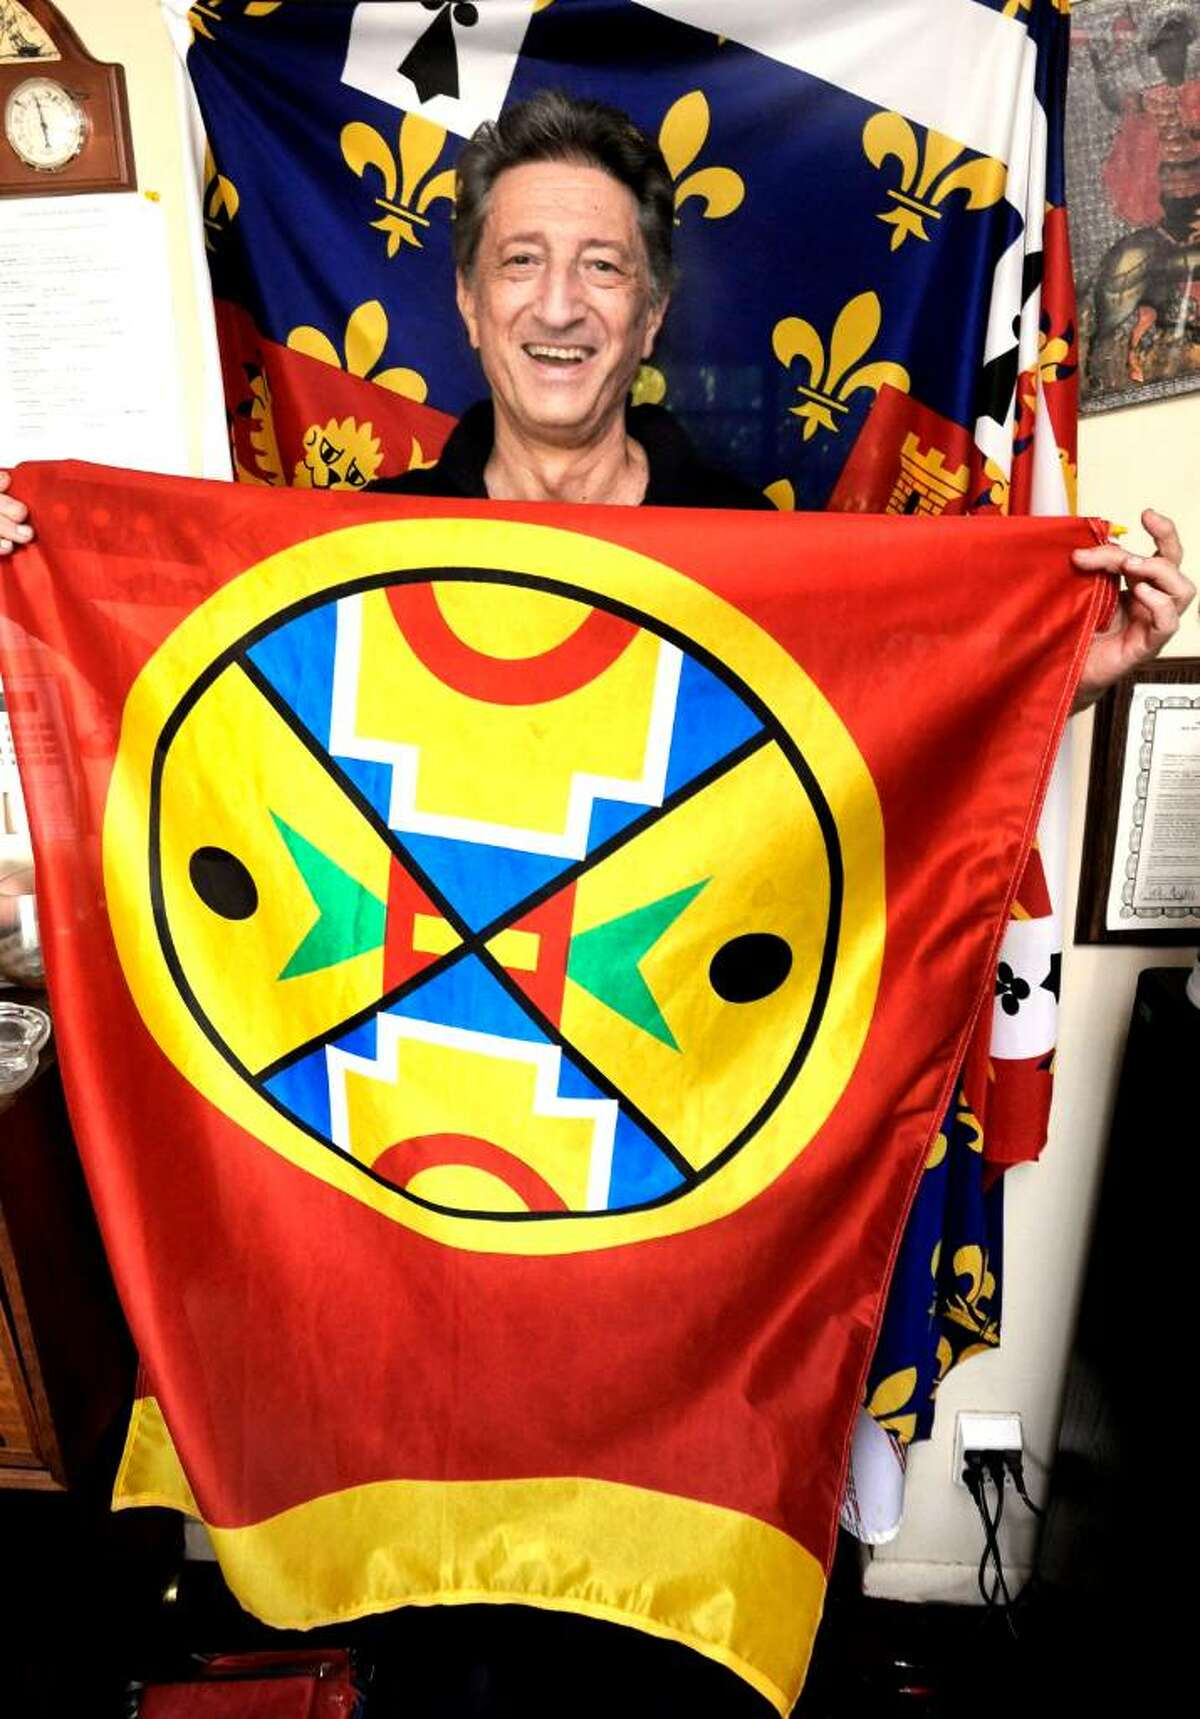 """Peter Orenski, aka """"the FlagDude"""", holds a flag of the Aroostook tribe of Maine in front of a flag of John of Gault, a historical flag of England, in his New Milford headquarters on friday."""